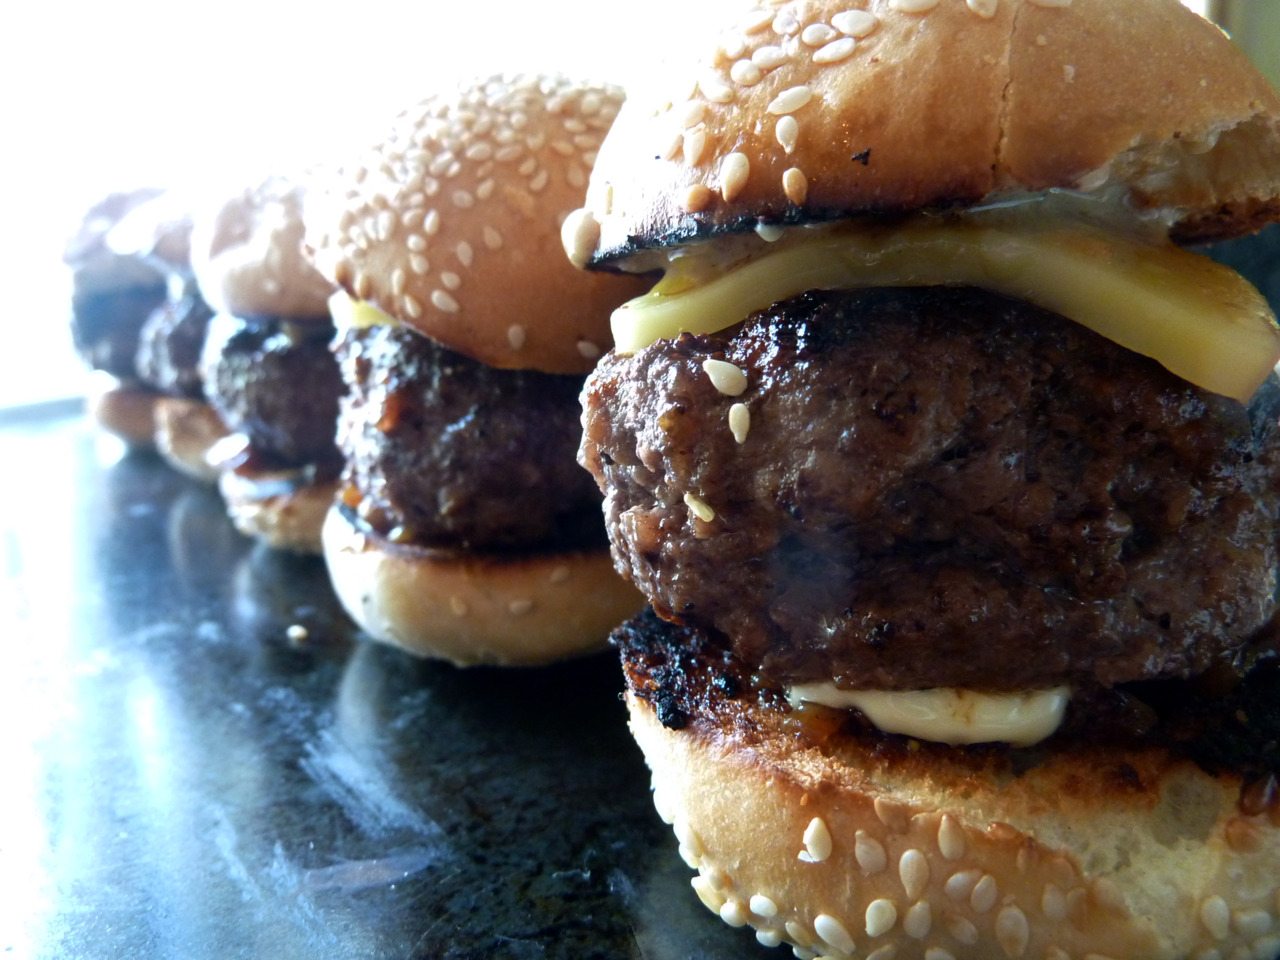 Mini-Burger Delux    Sliders I made for Mother's Day. Includes truffled foie gras, balsamic caramelized onions, chabot white cheddar. Yum .